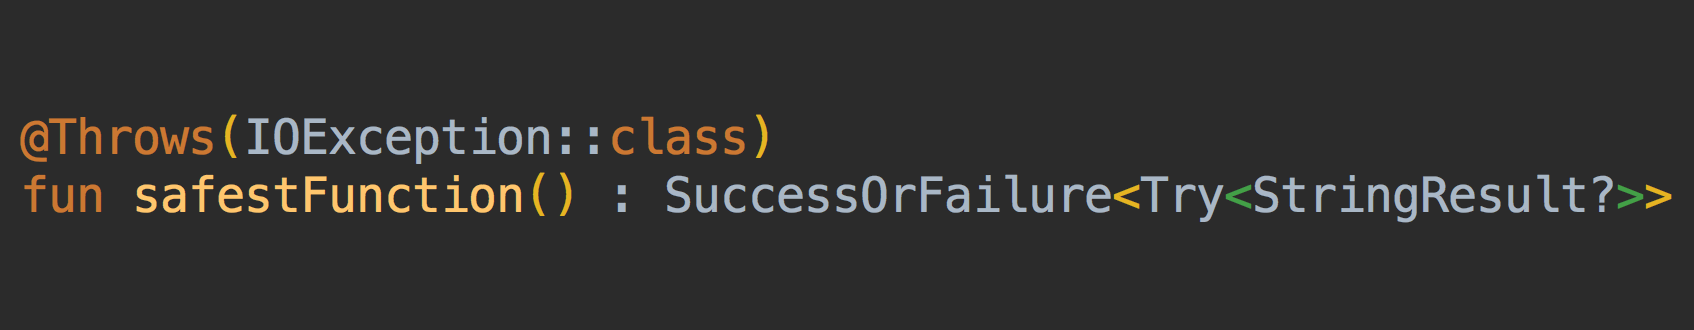 Exceptions handling in Kotlin - are you doing it right? feature image